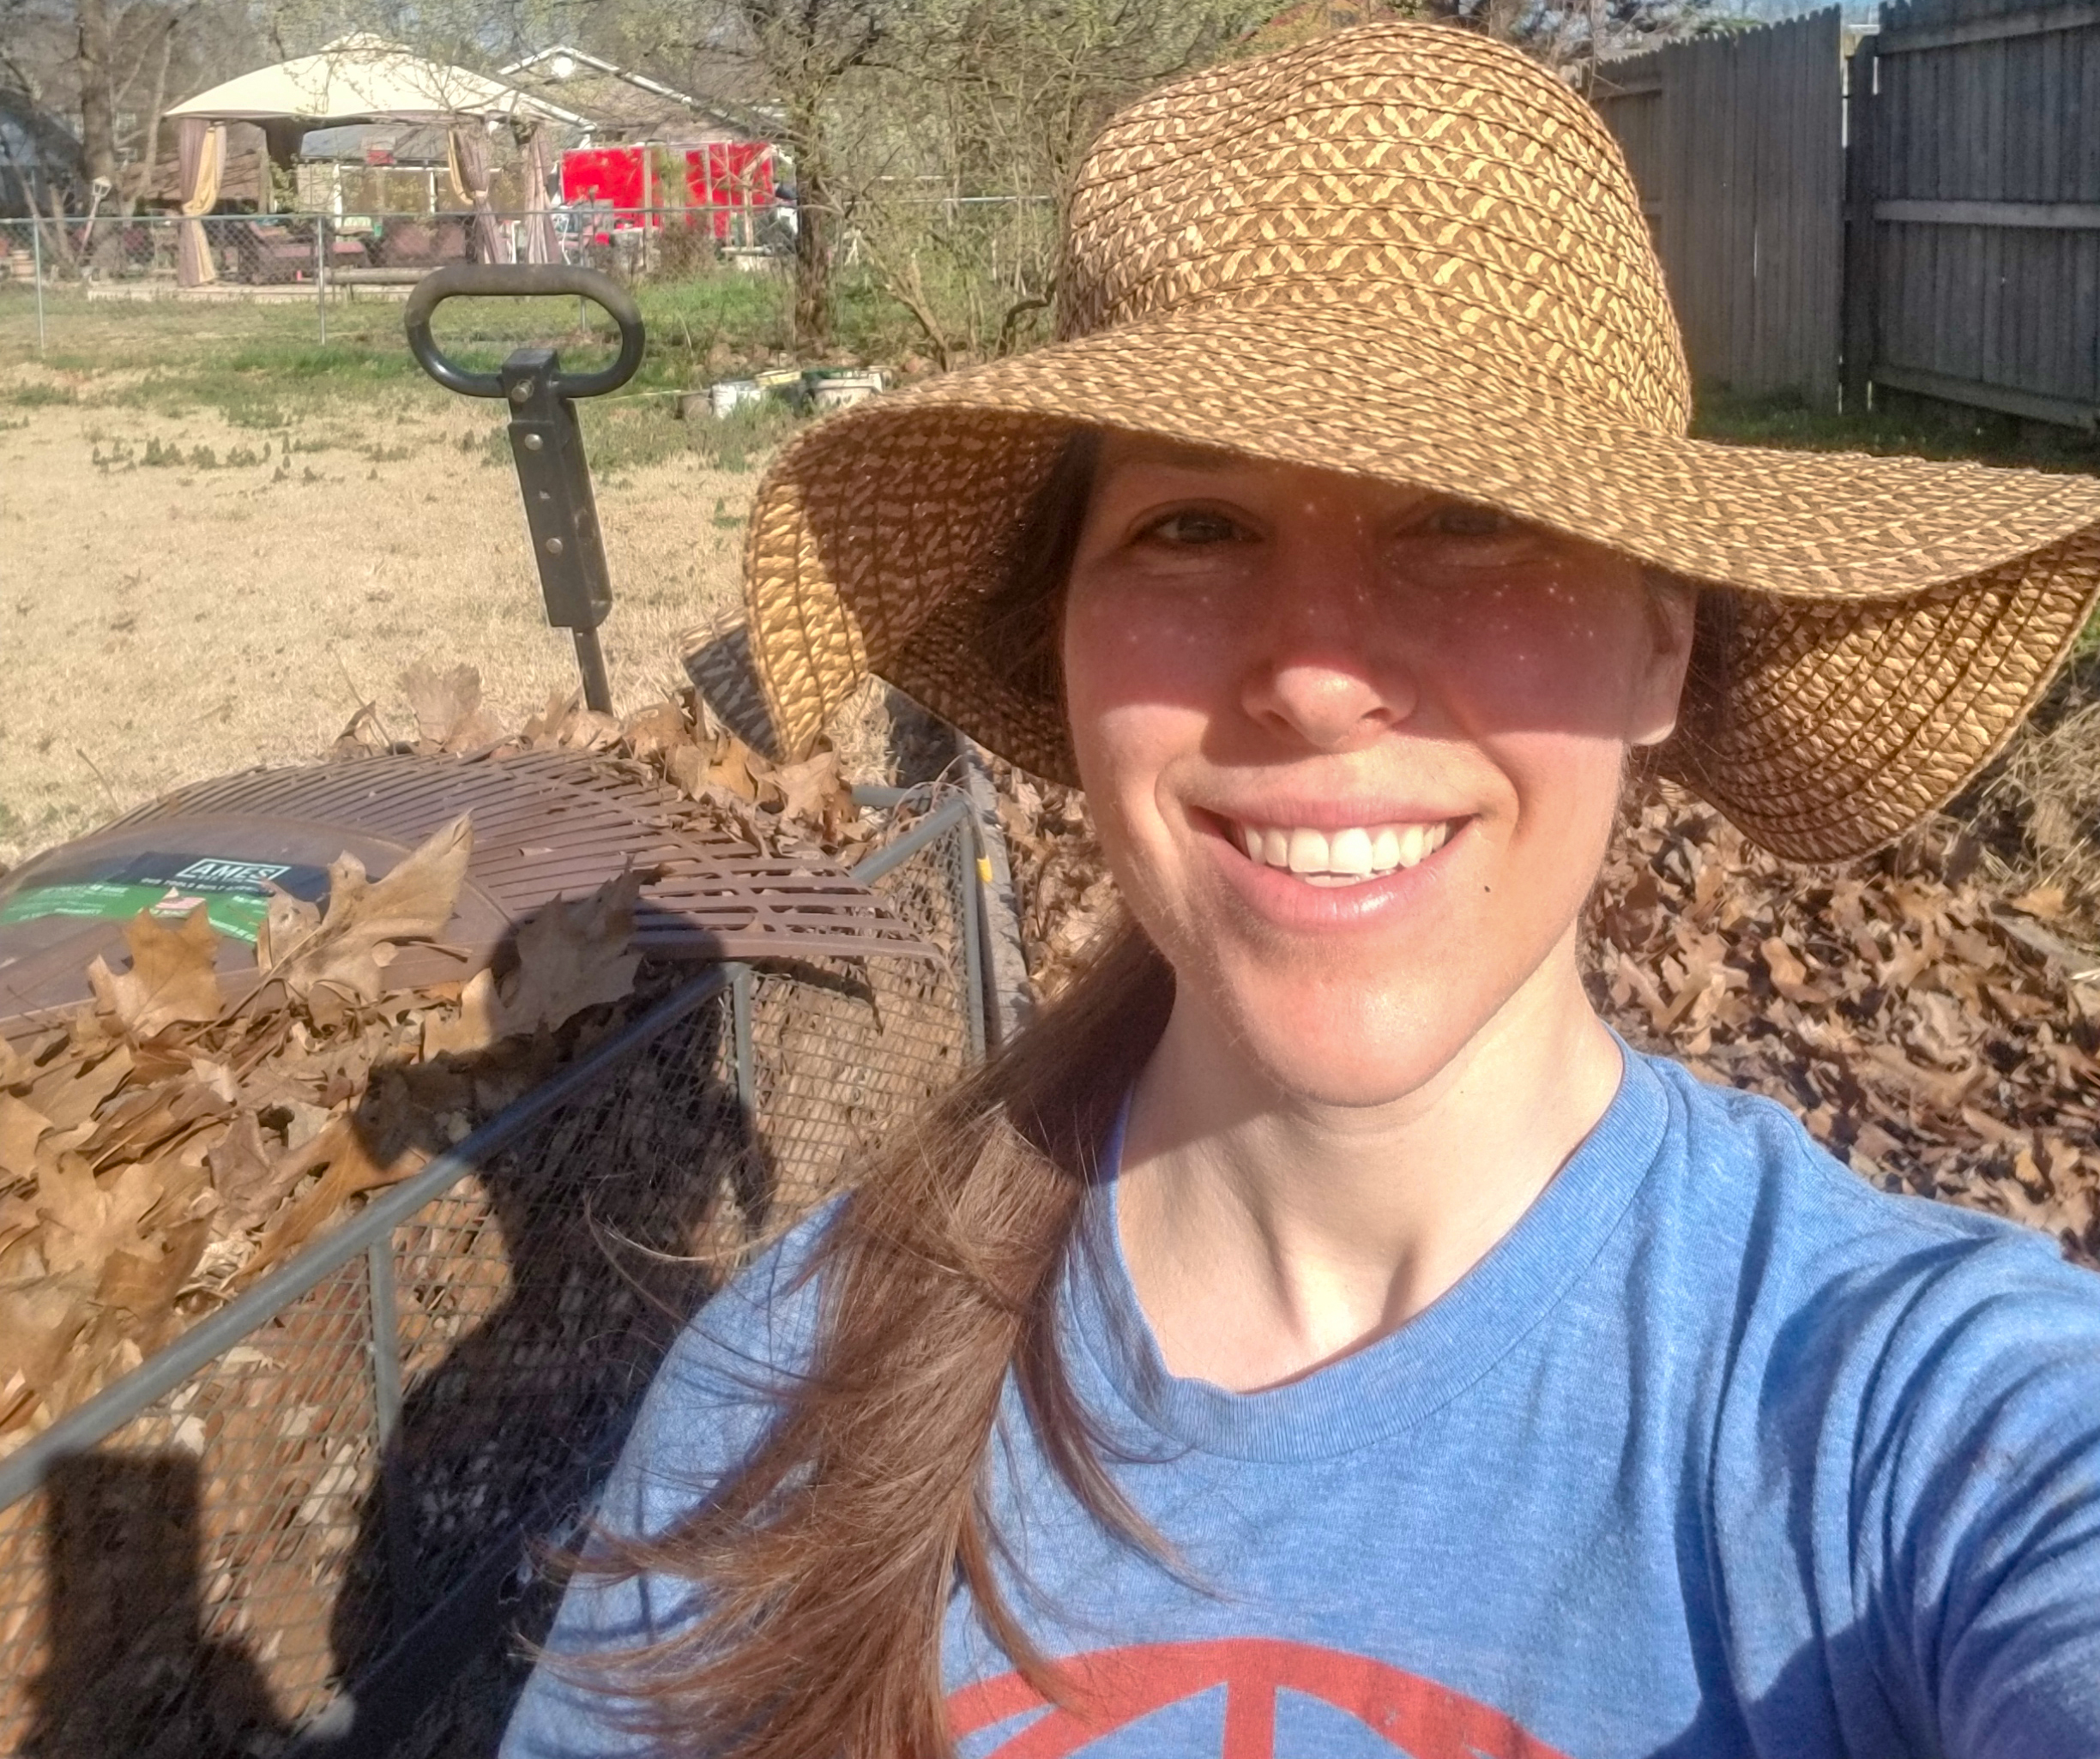 Lindsay Fishburn Shares Her Passion For Gardening